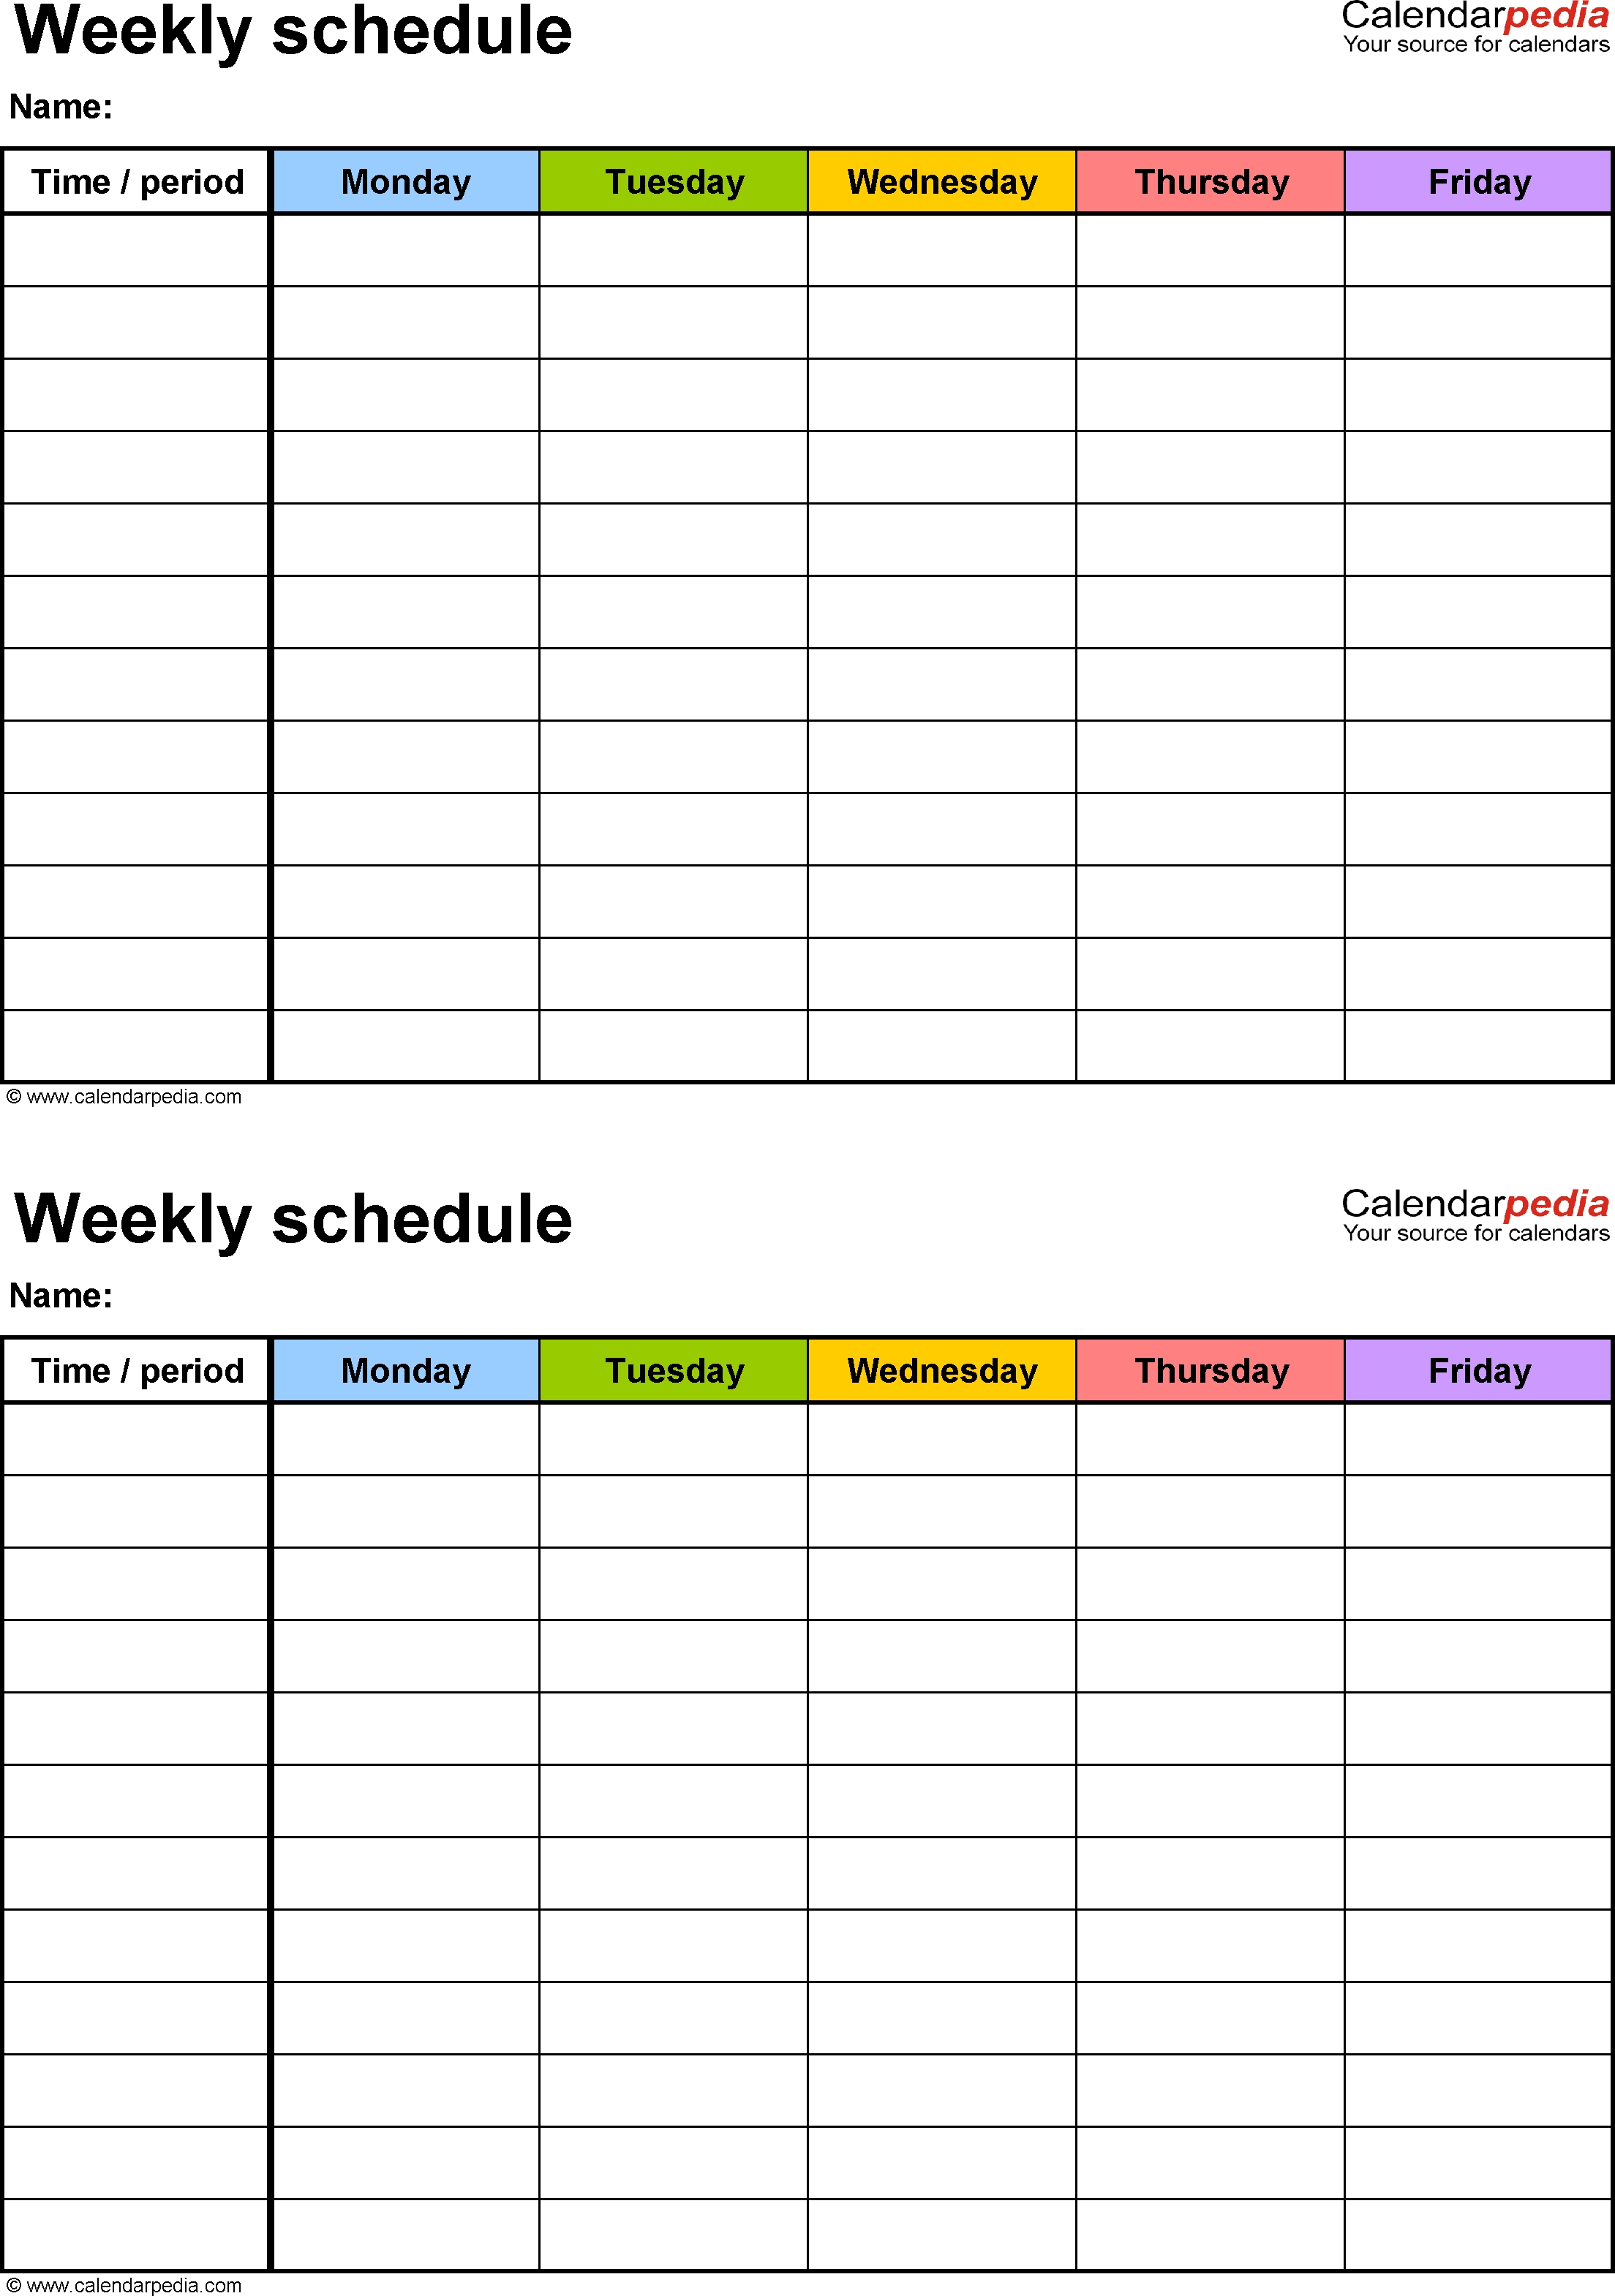 Free Weekly Schedule Templates For Pdf - 18 Templates pertaining to Printable Weekly Planner For The Week